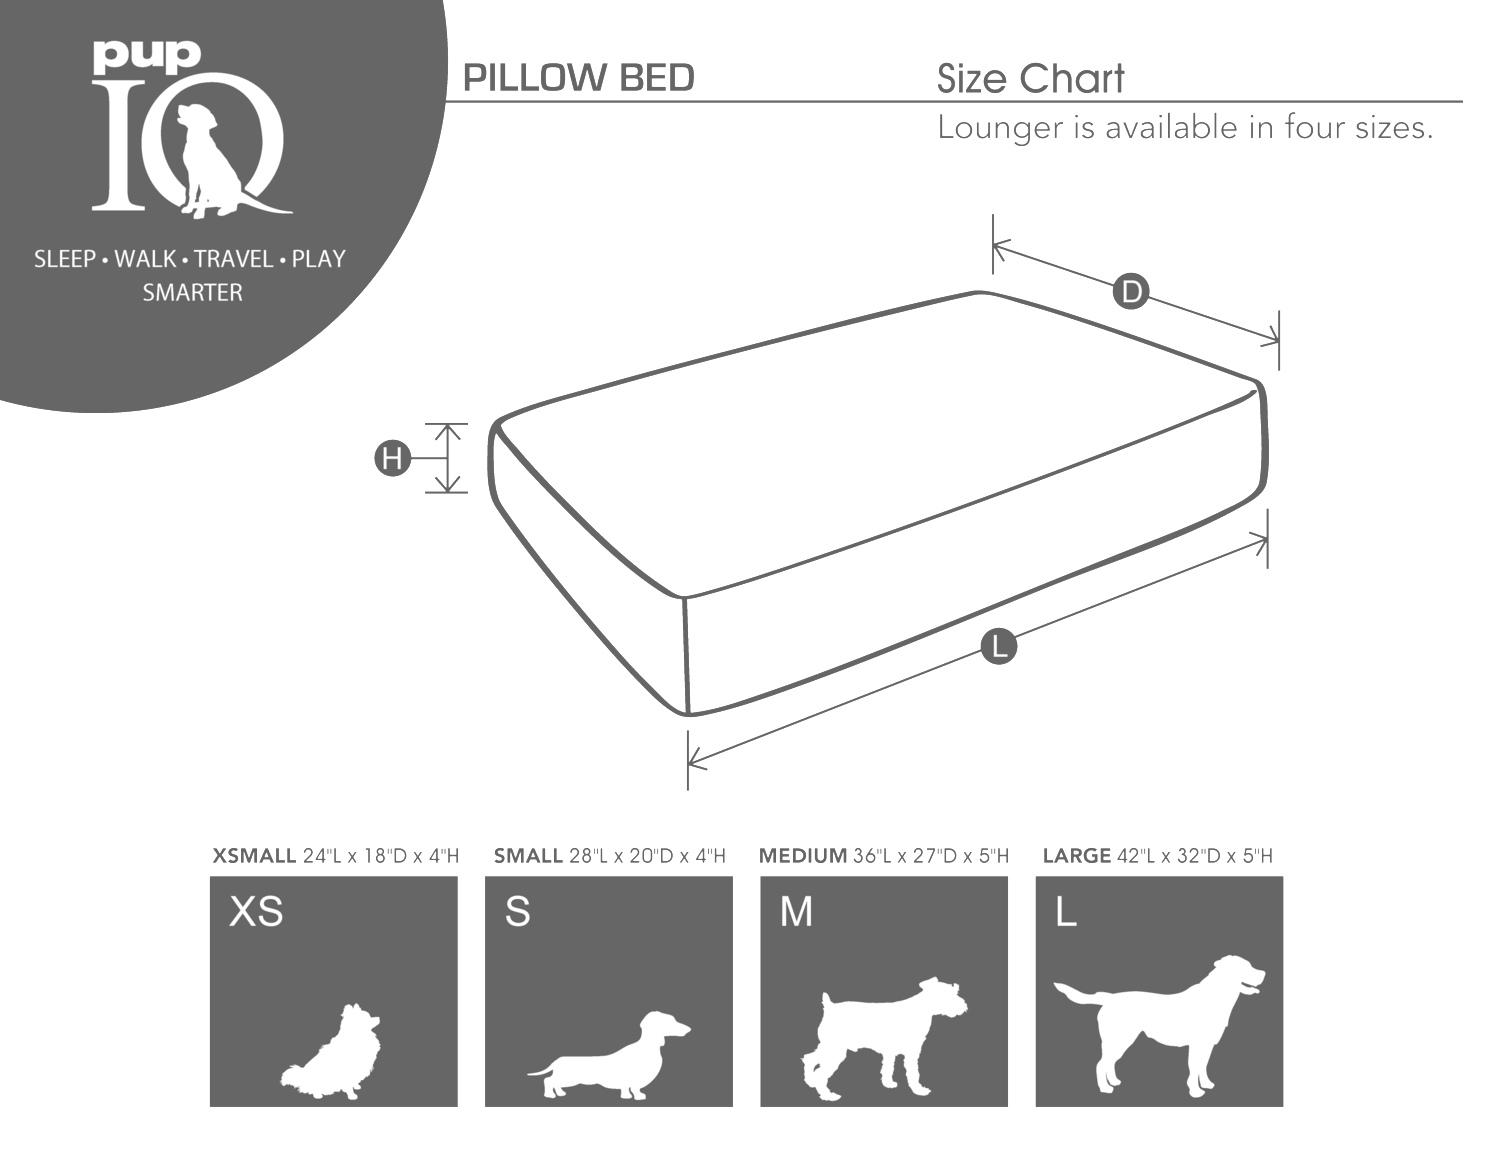 luxe pup pillow bed size chart